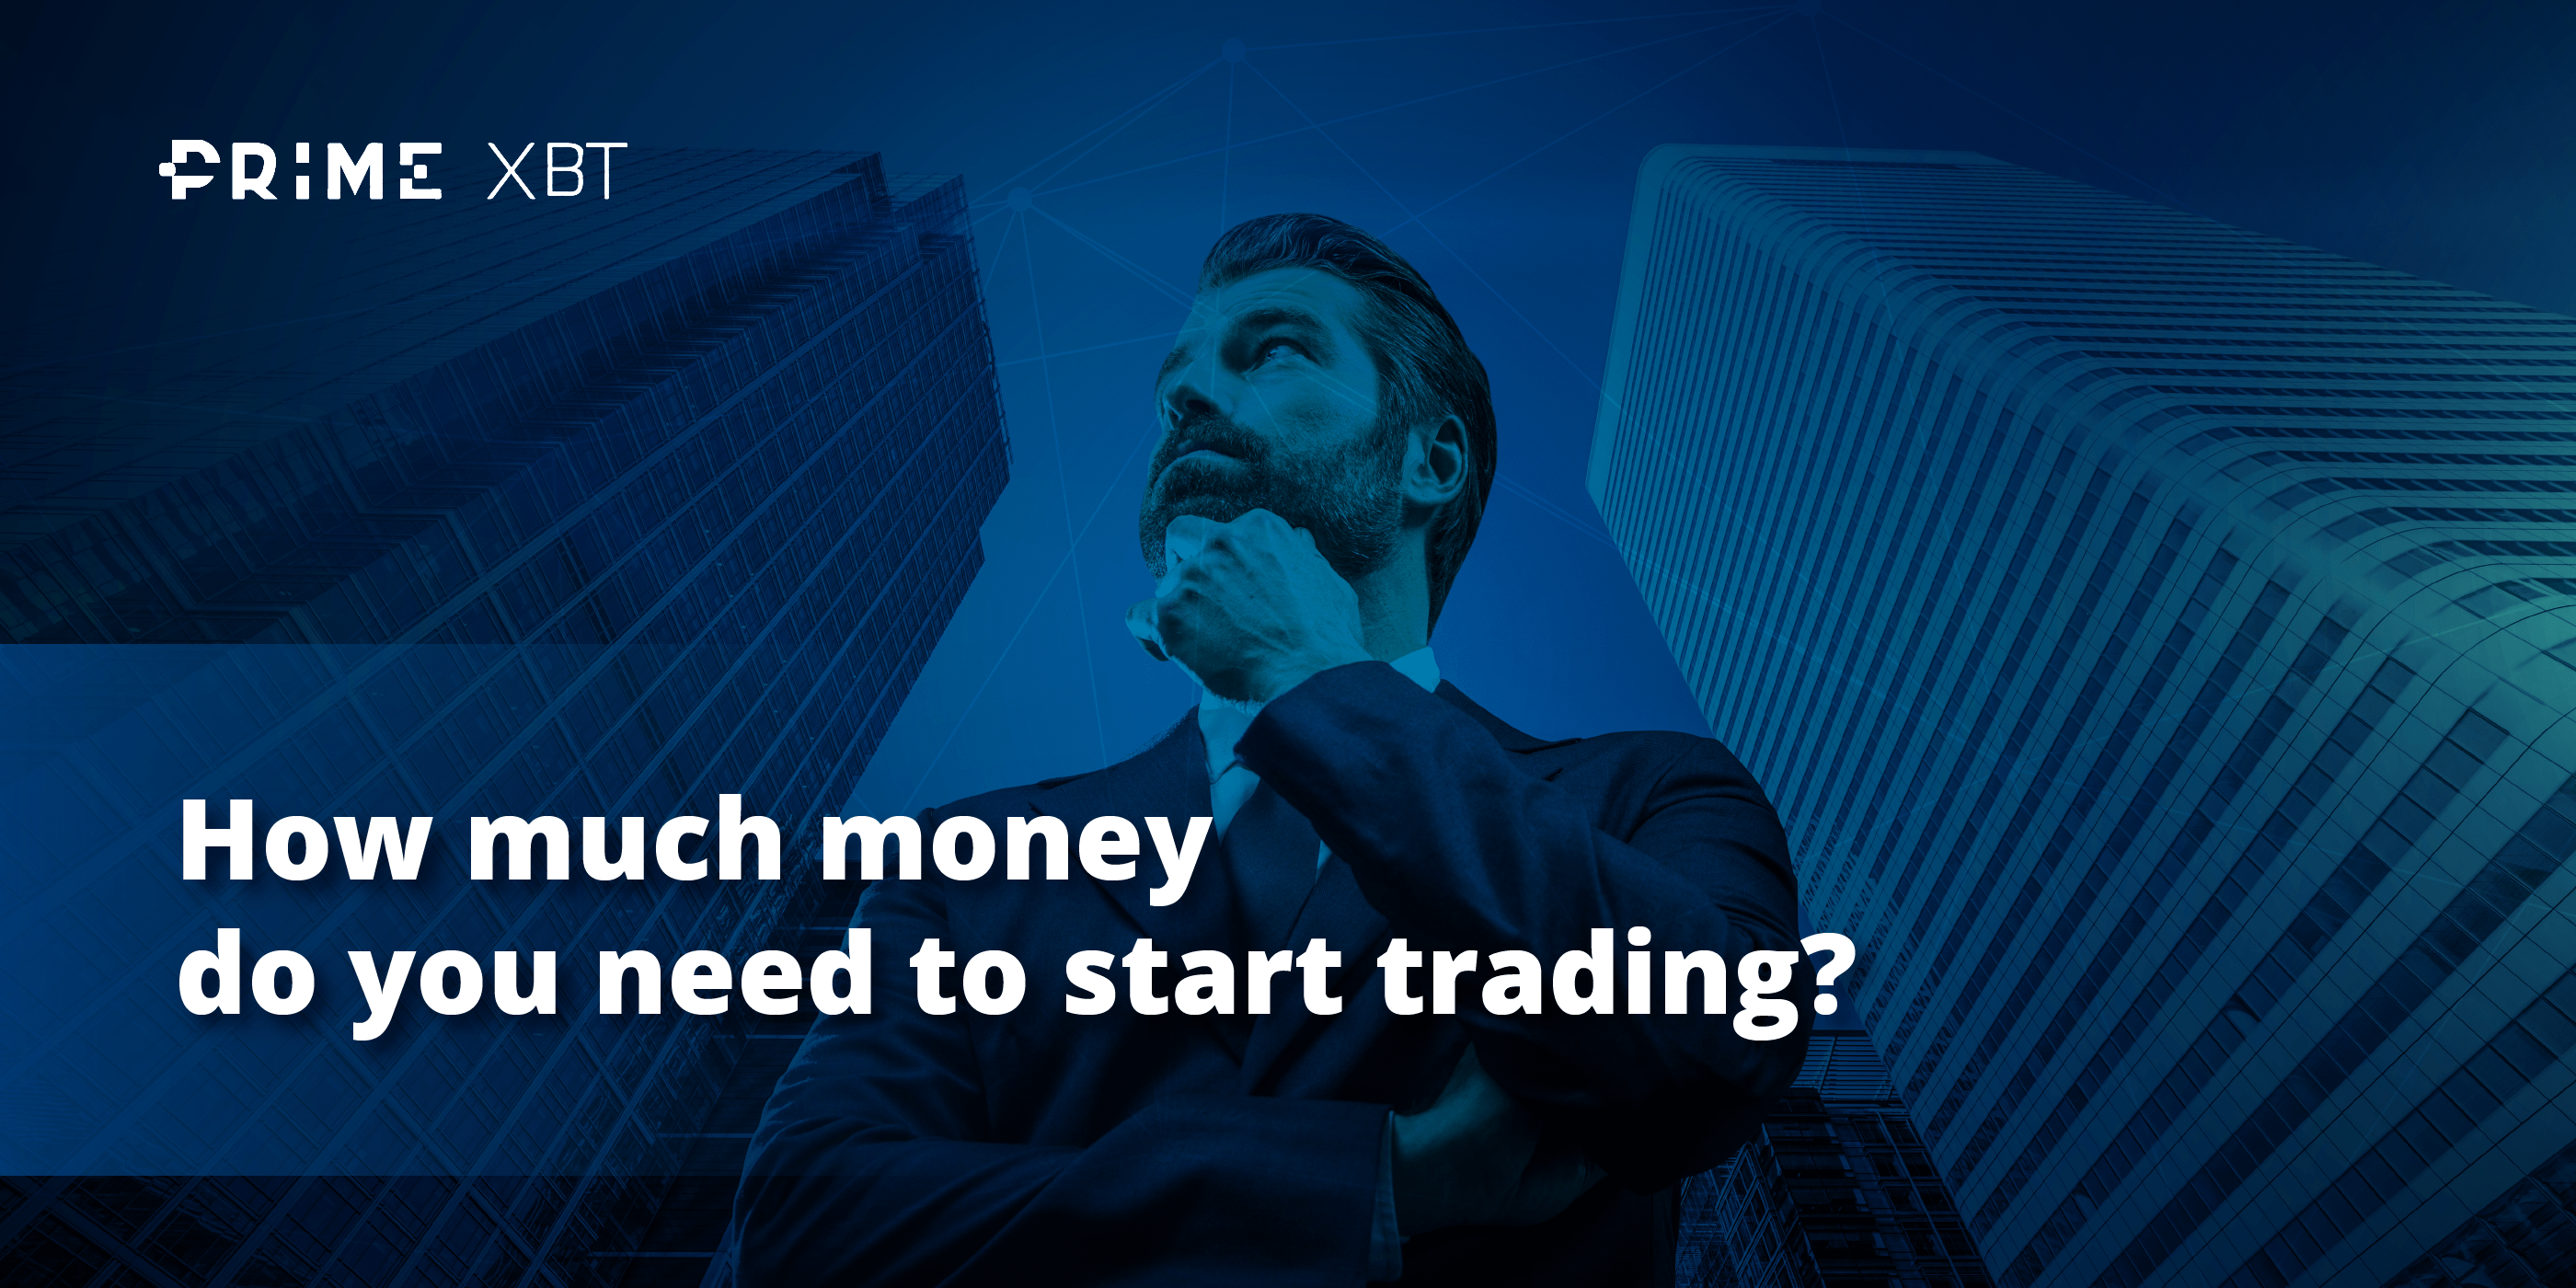 How Much Money Do You Need To Start Trading Prime Xbt